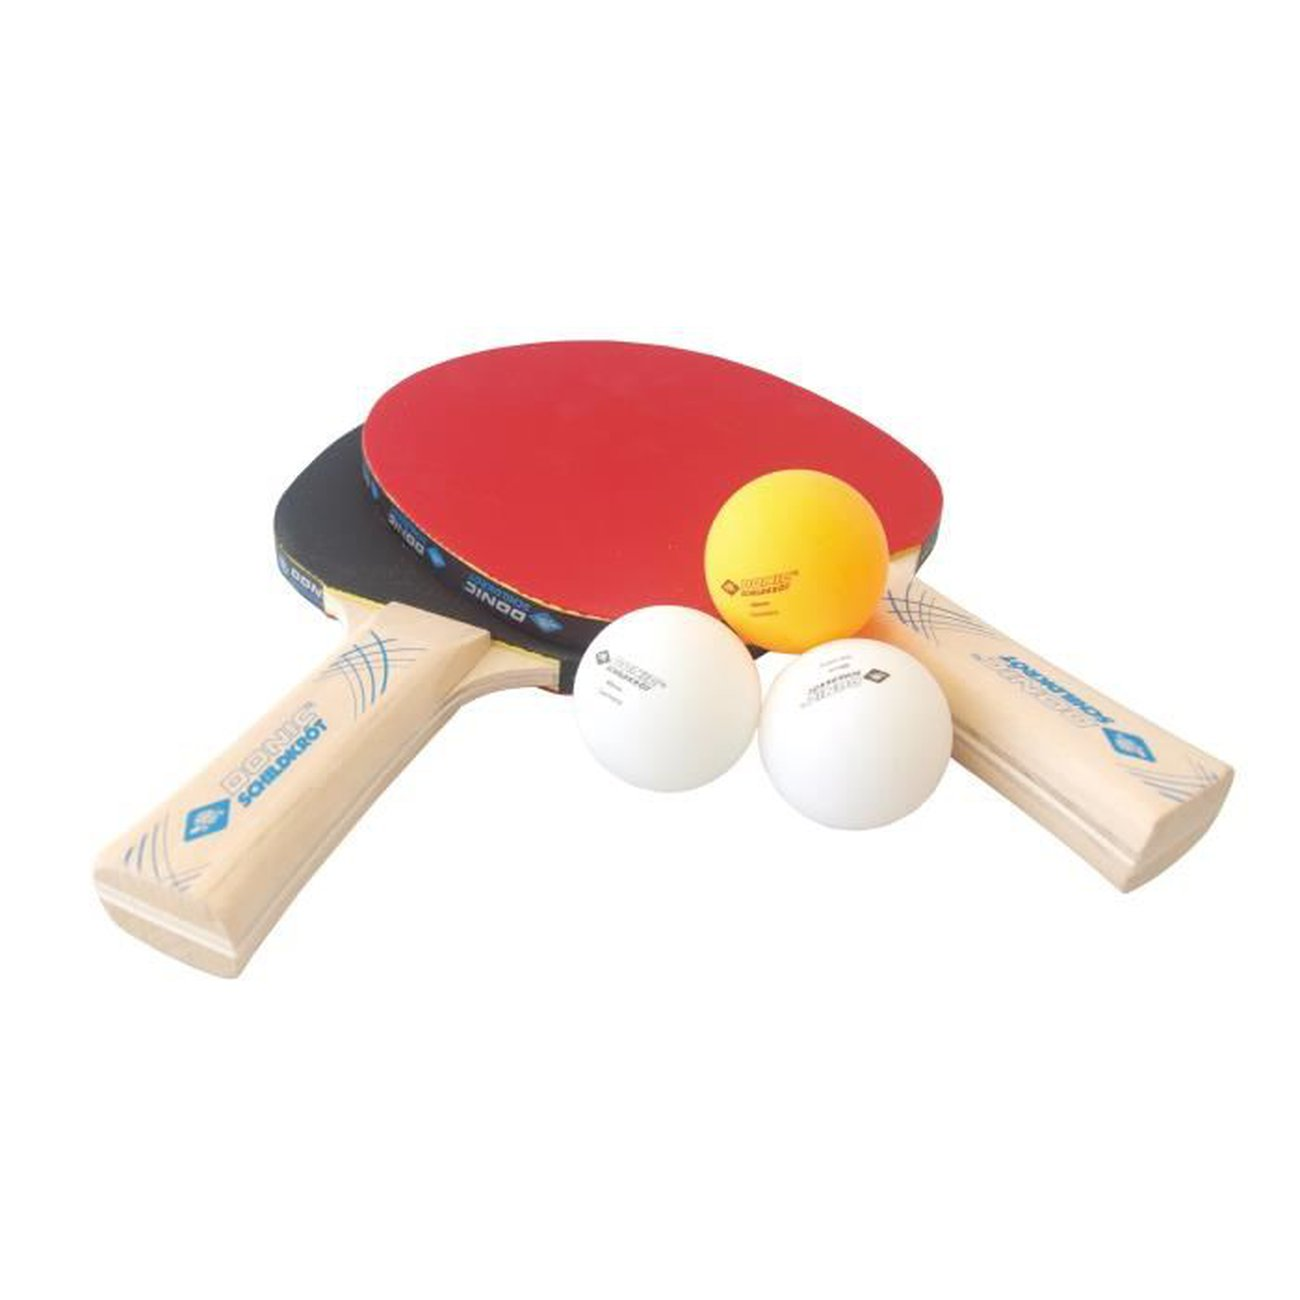 Raquette de tennis de table go sport